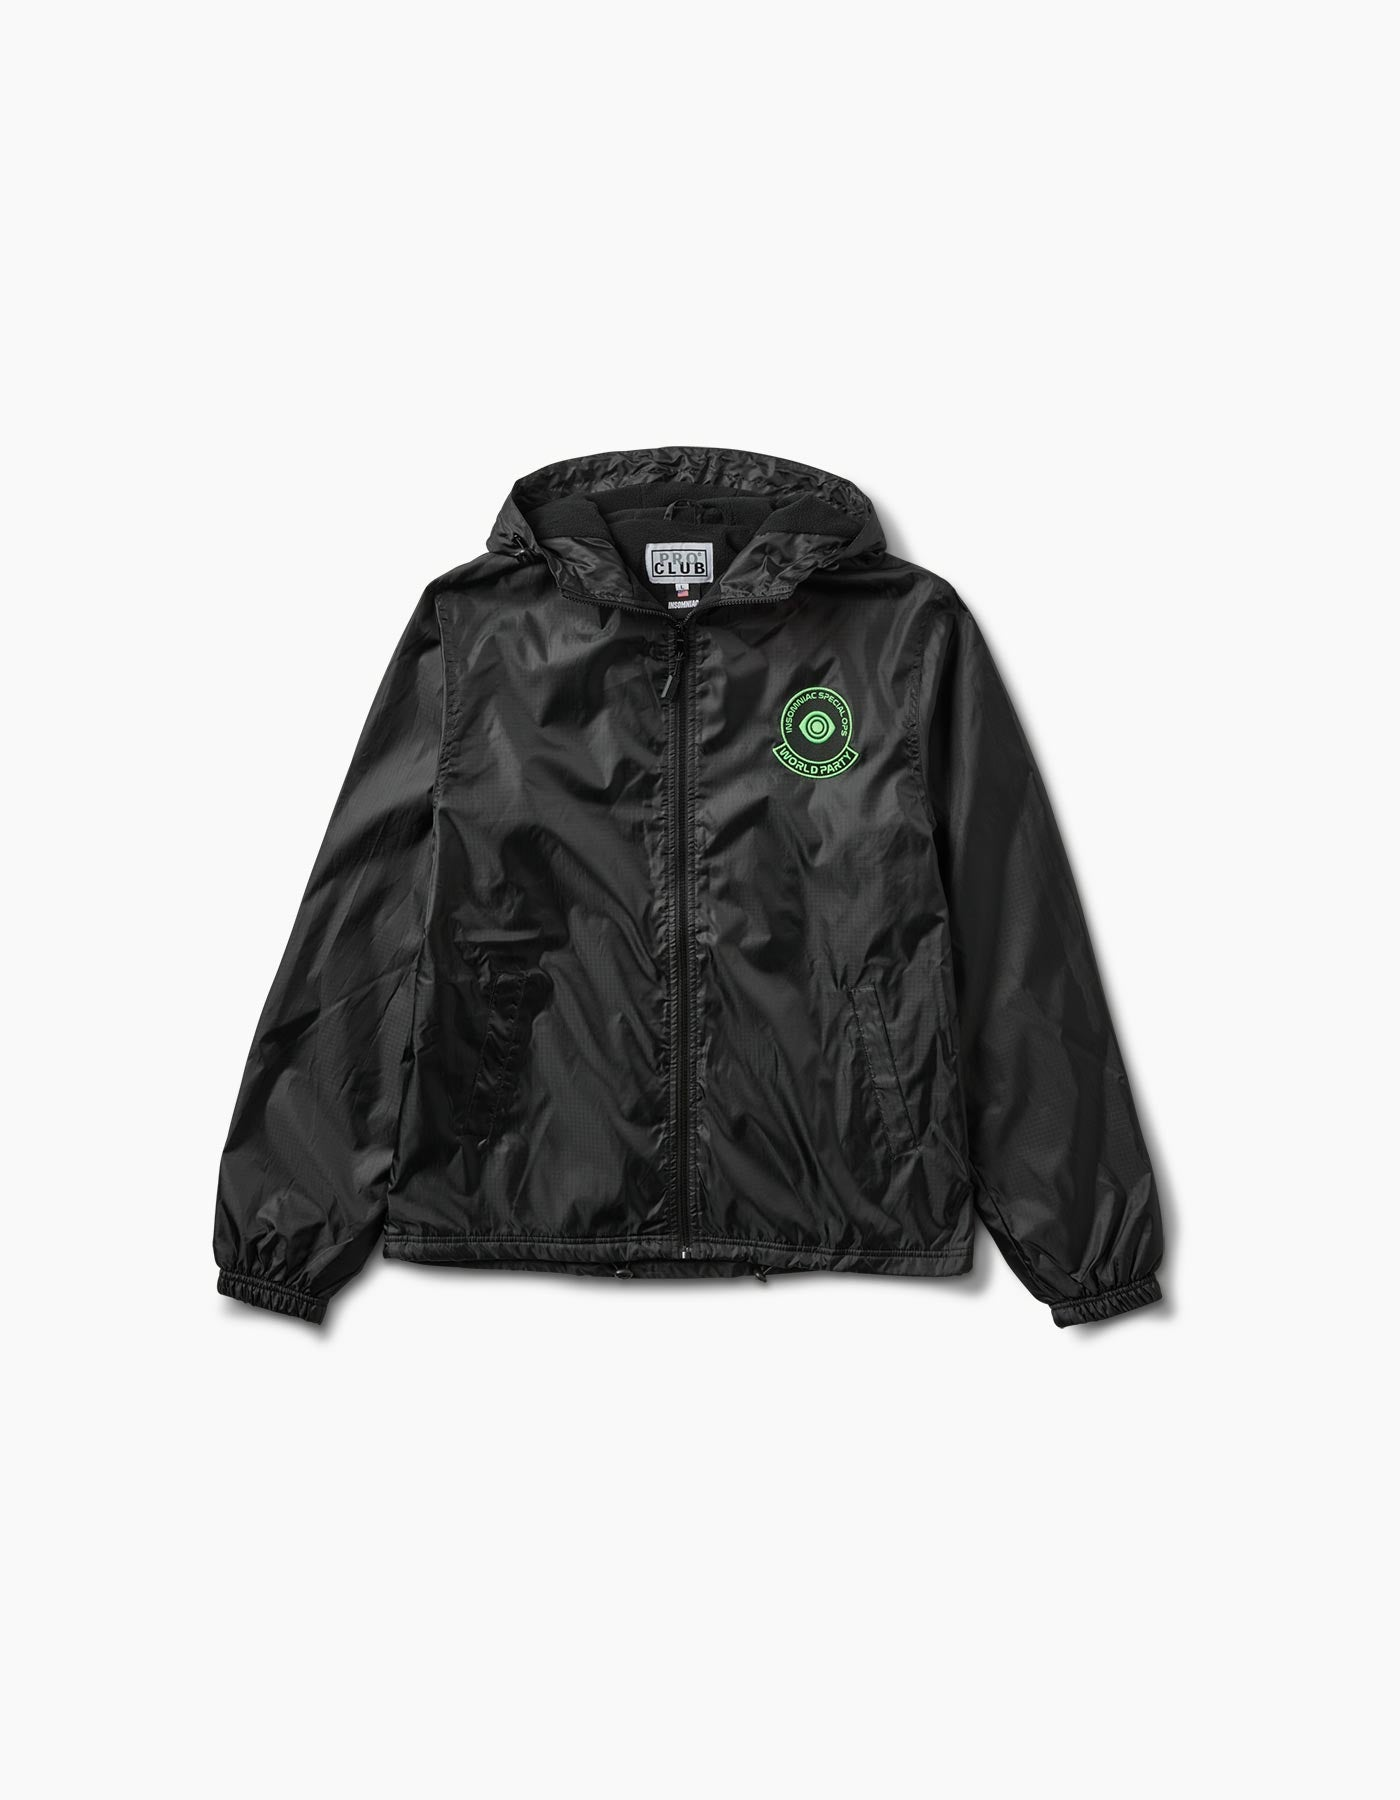 Insomniac - World Party Special Ops Jacket Black